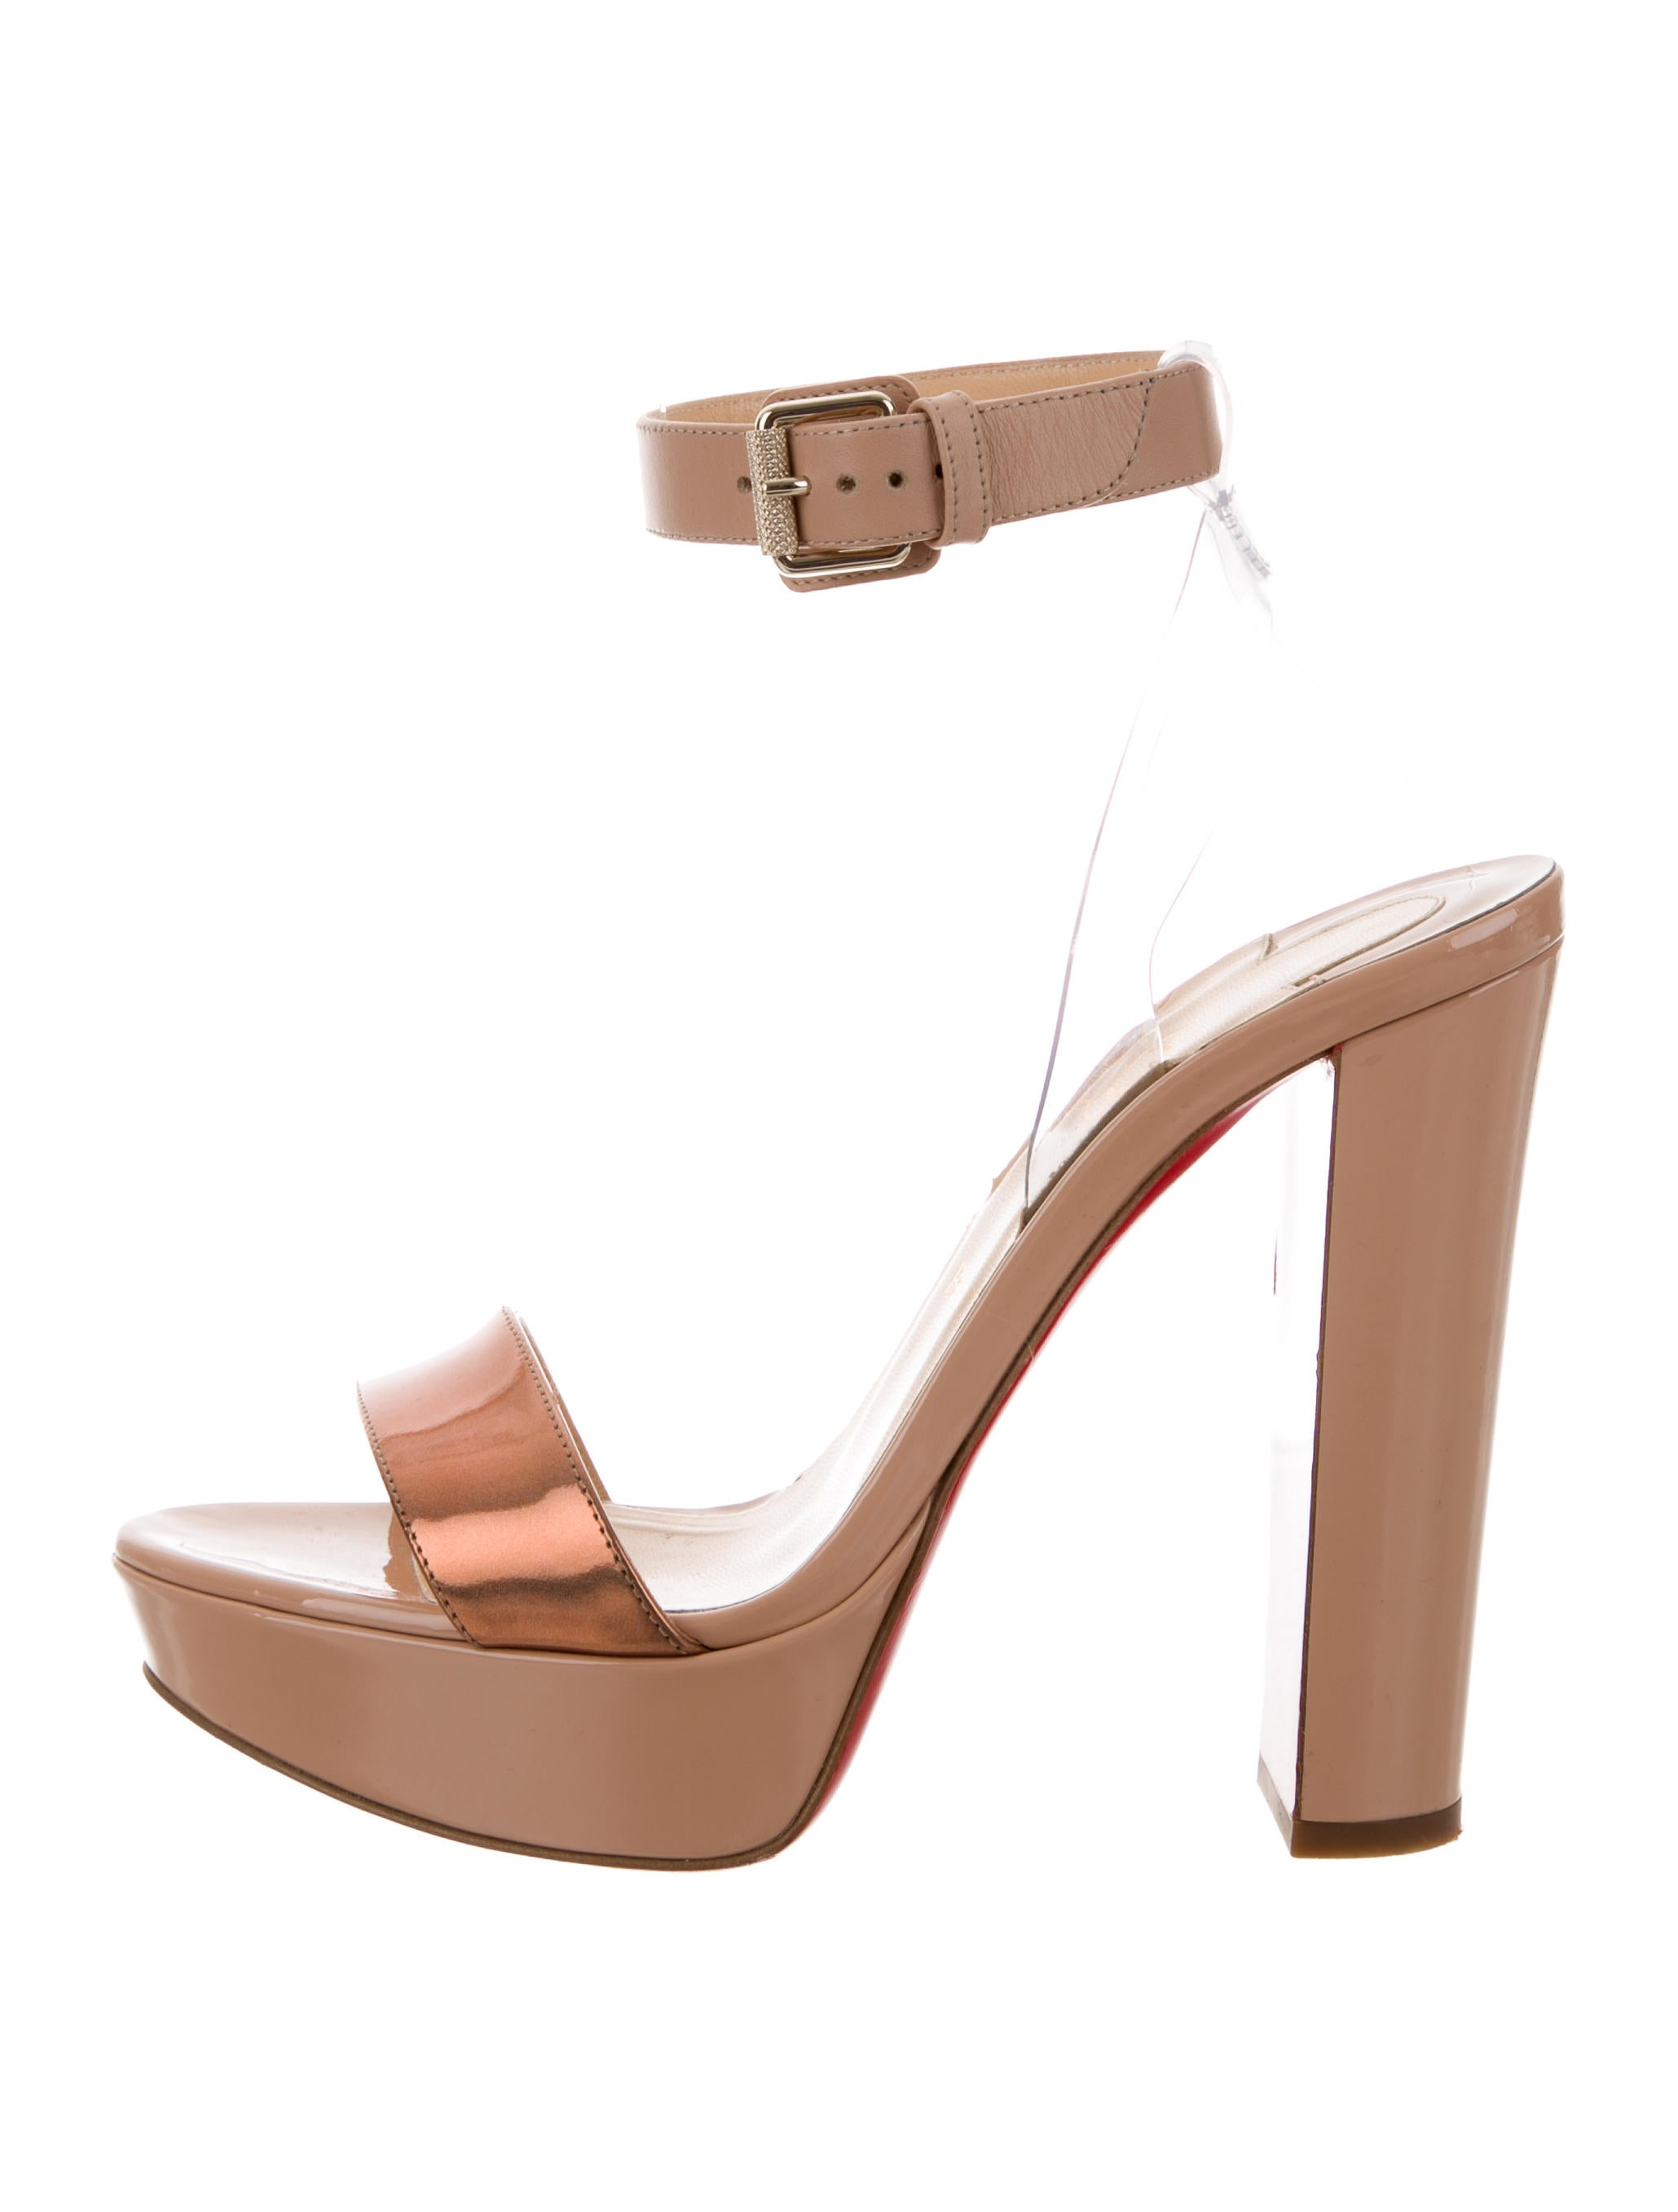 5572581650bc Christian Louboutin Cherry 140 Sandals - Shoes - CHT82755